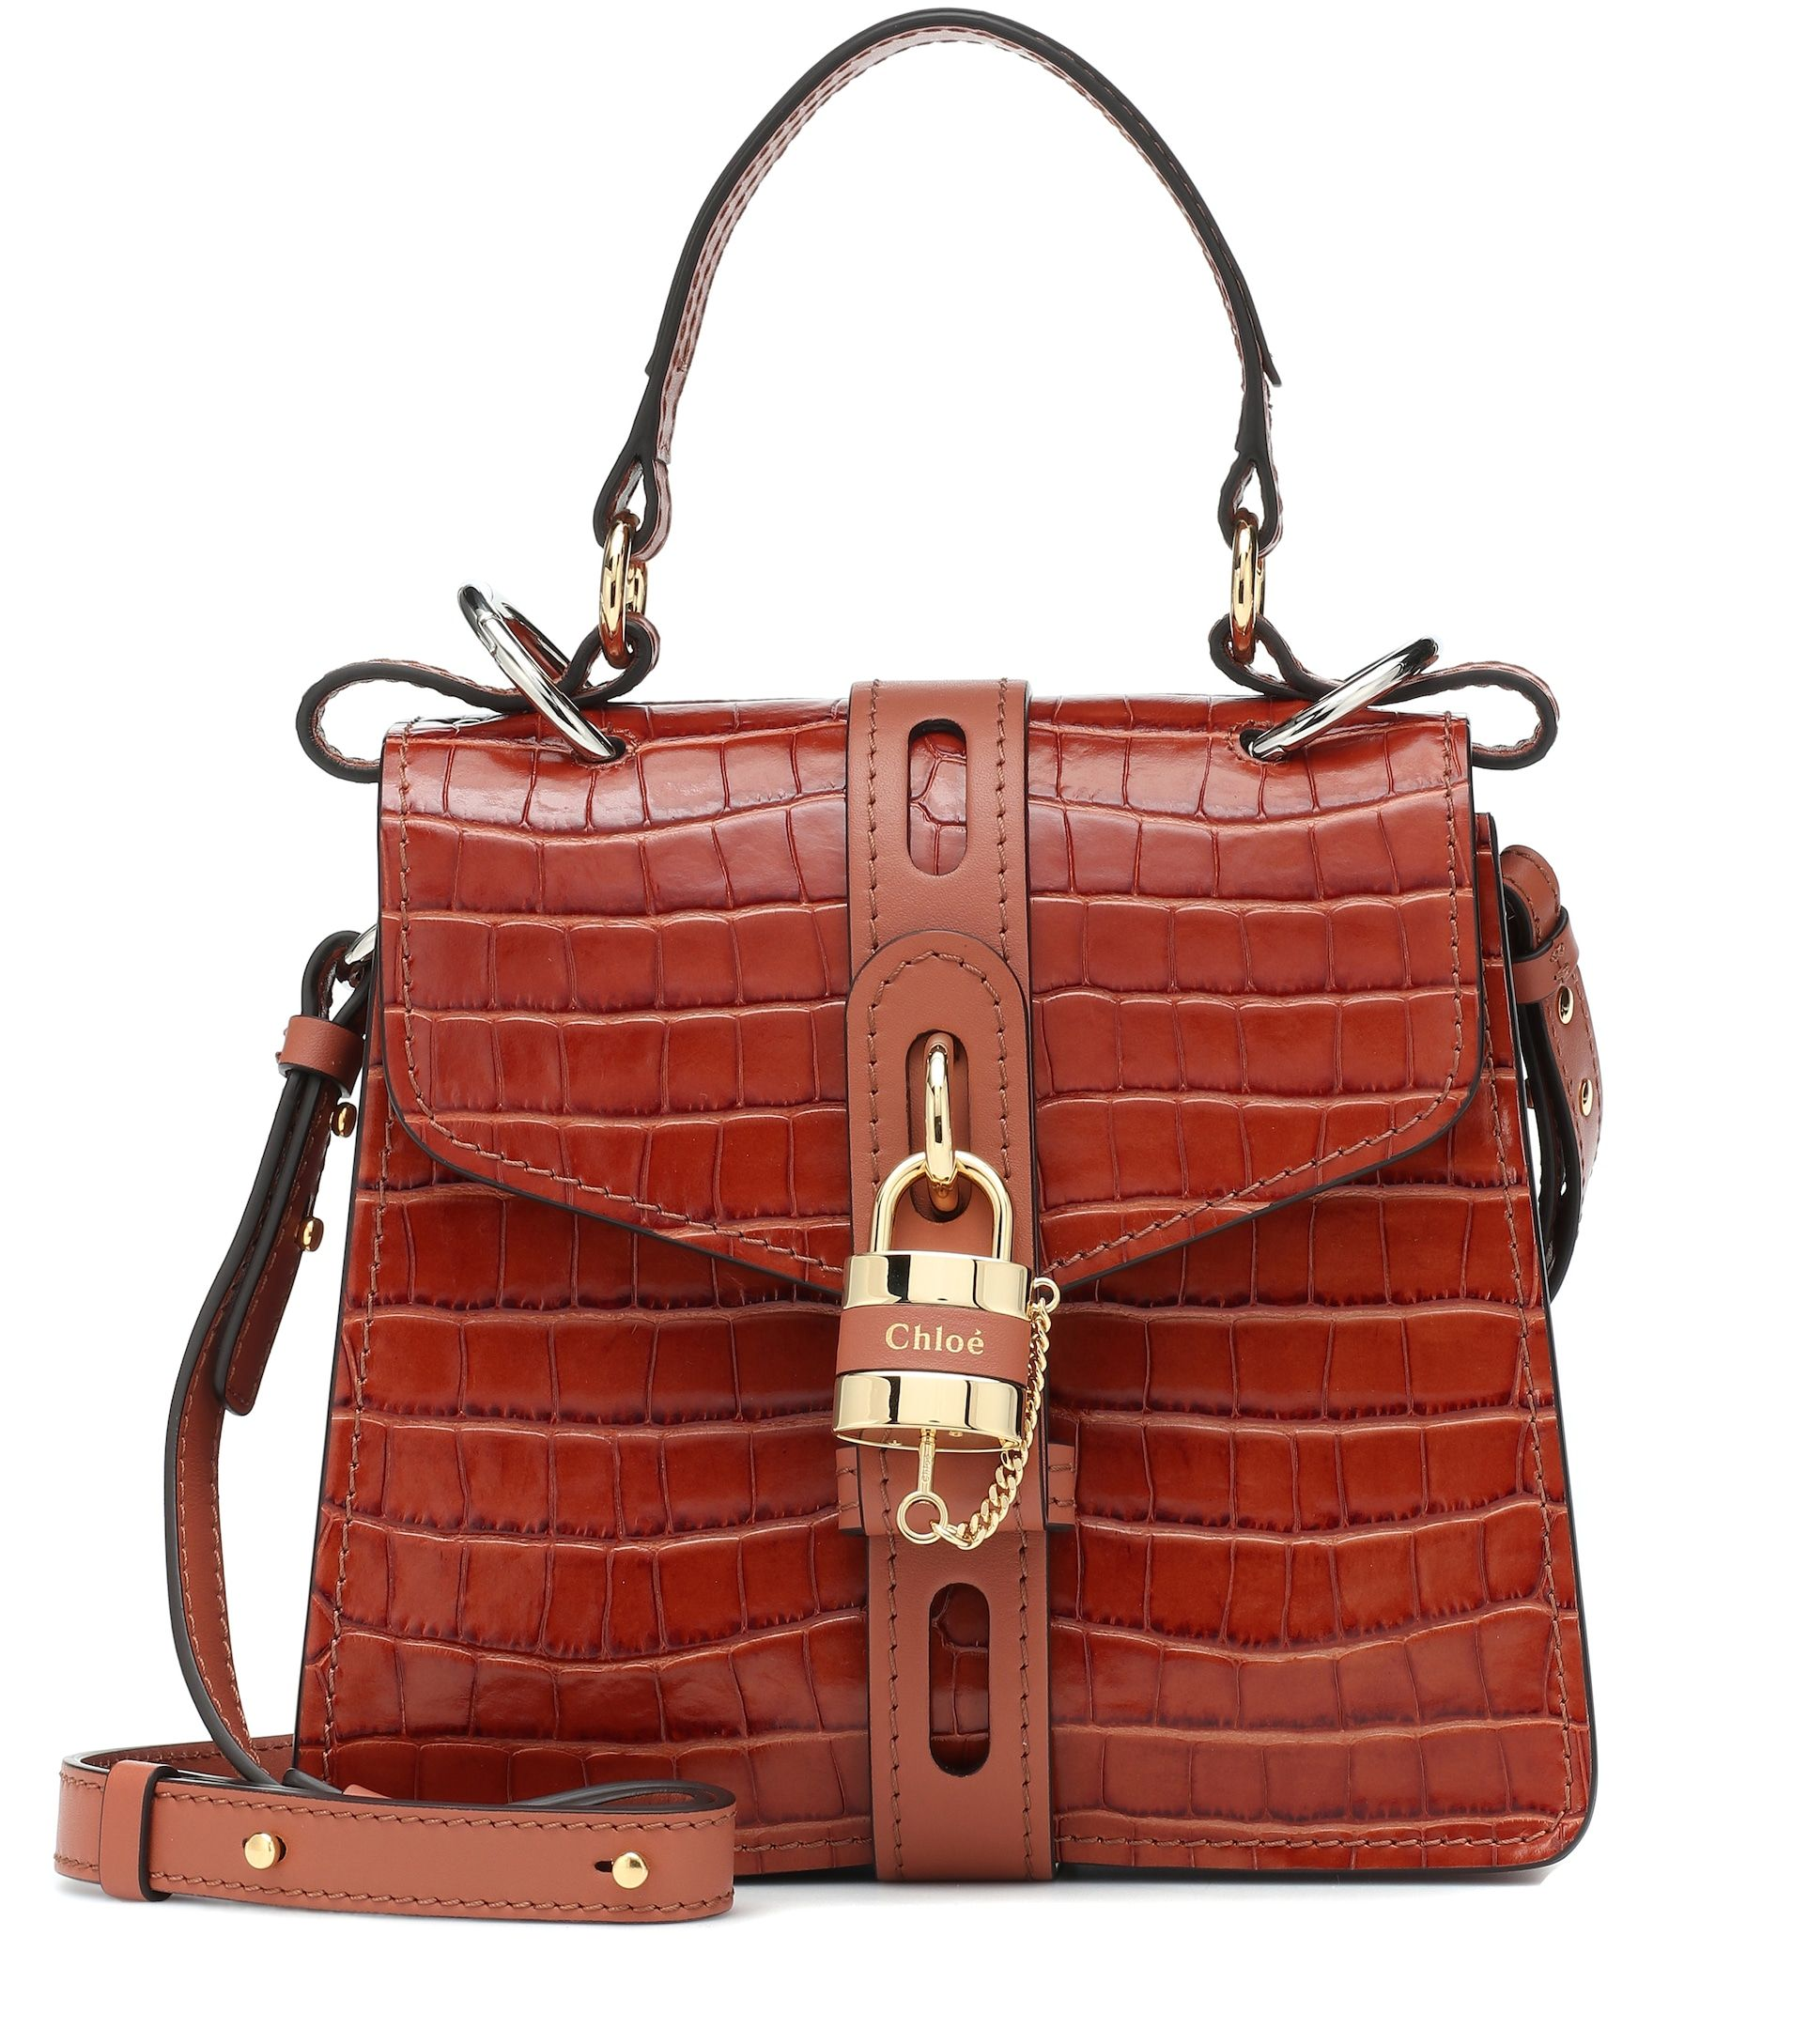 chloe-aby-small-croc-effect-leather-shoulder-bag